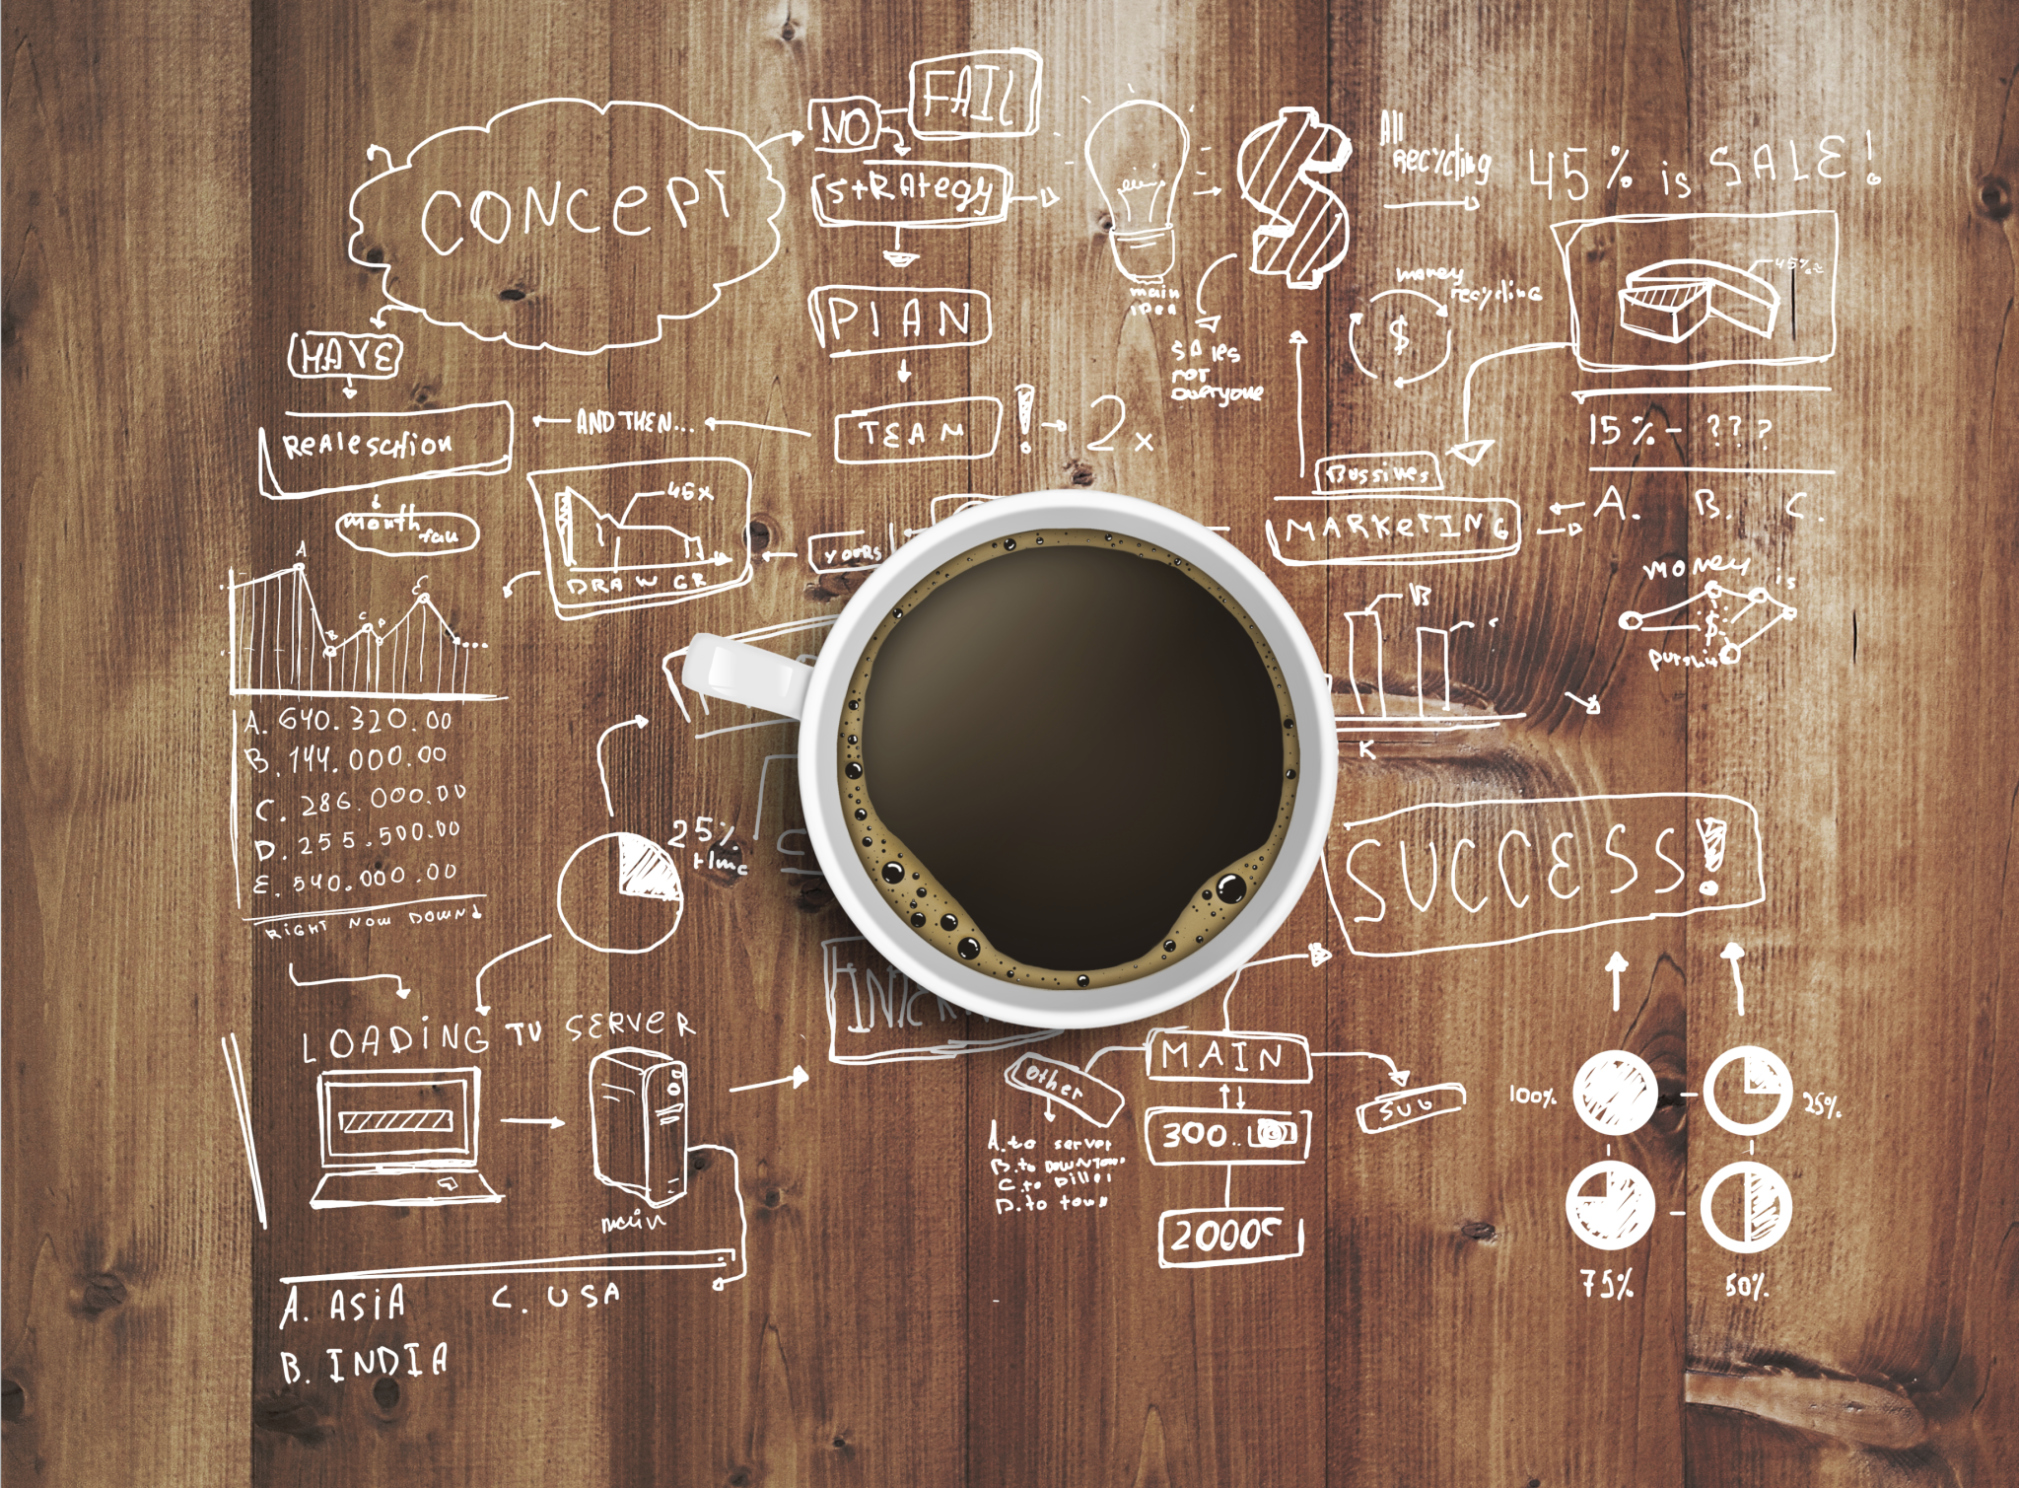 From PR to Marketing: Why You Should Expand Your Skill Set